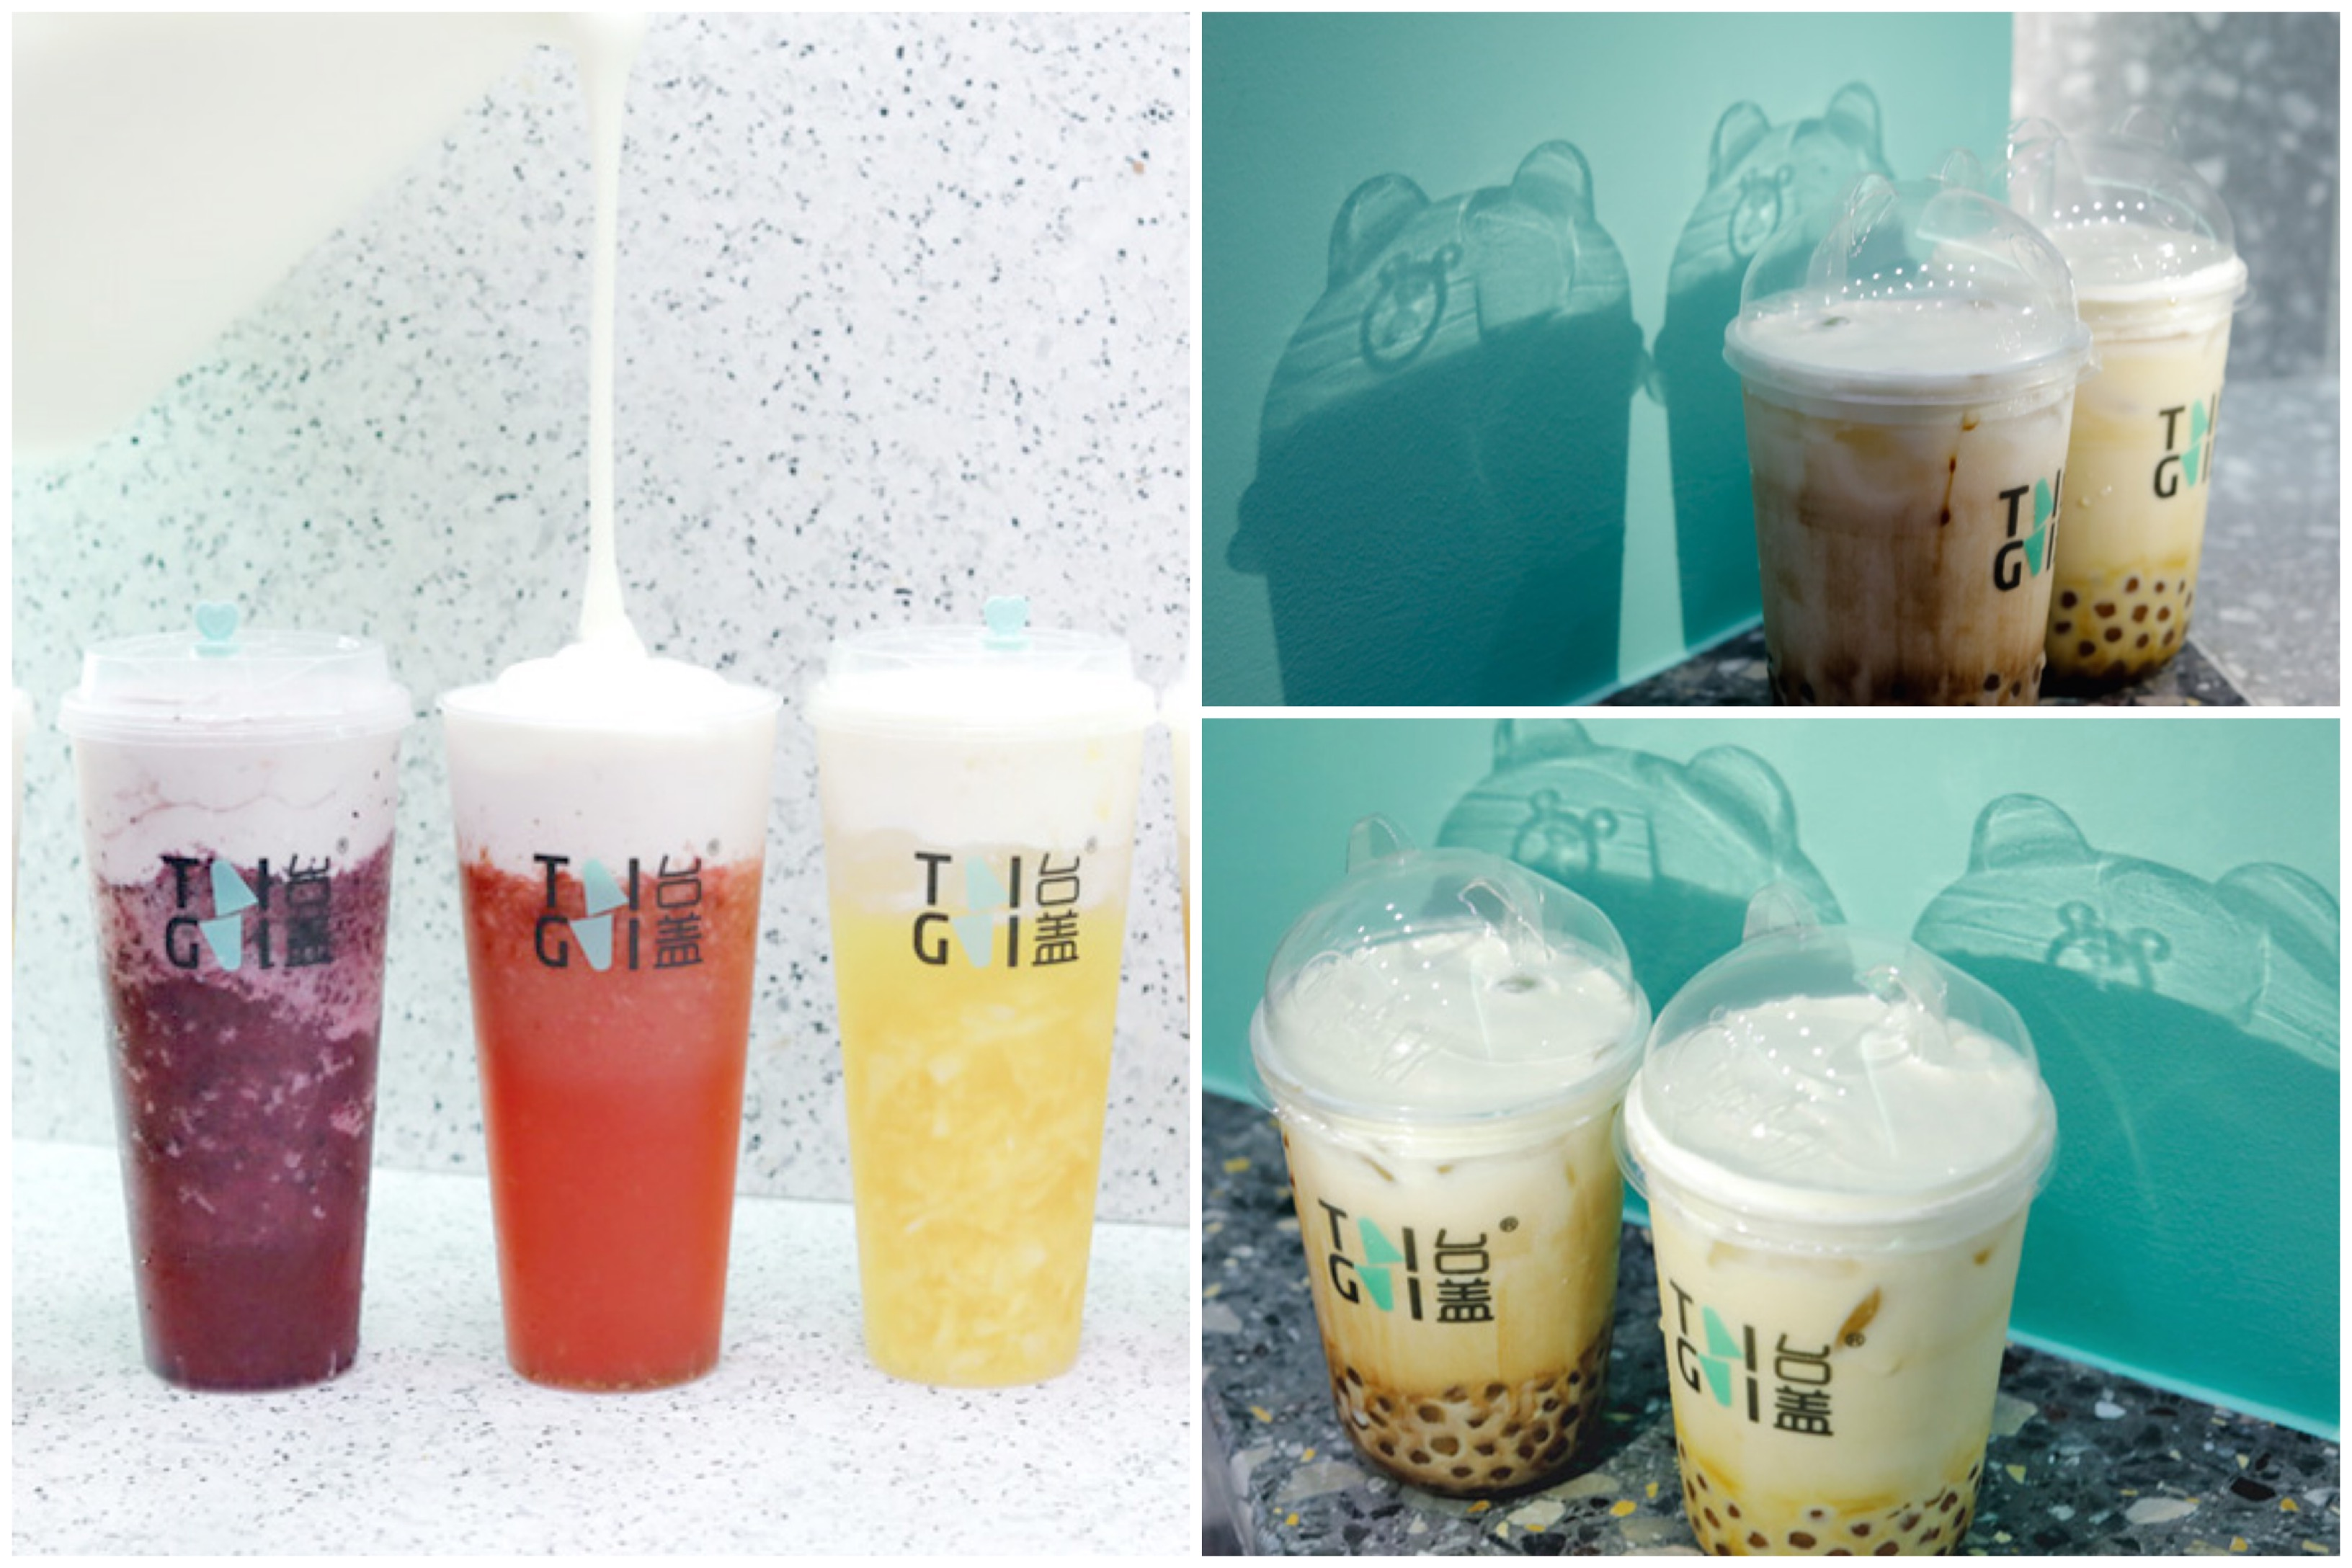 """TaiGai 台盖 – Popular Tea Brand With Fruit-Blended Milk Cheese Crowns And """"Dancing Bear"""" Cups Opens At NEX"""